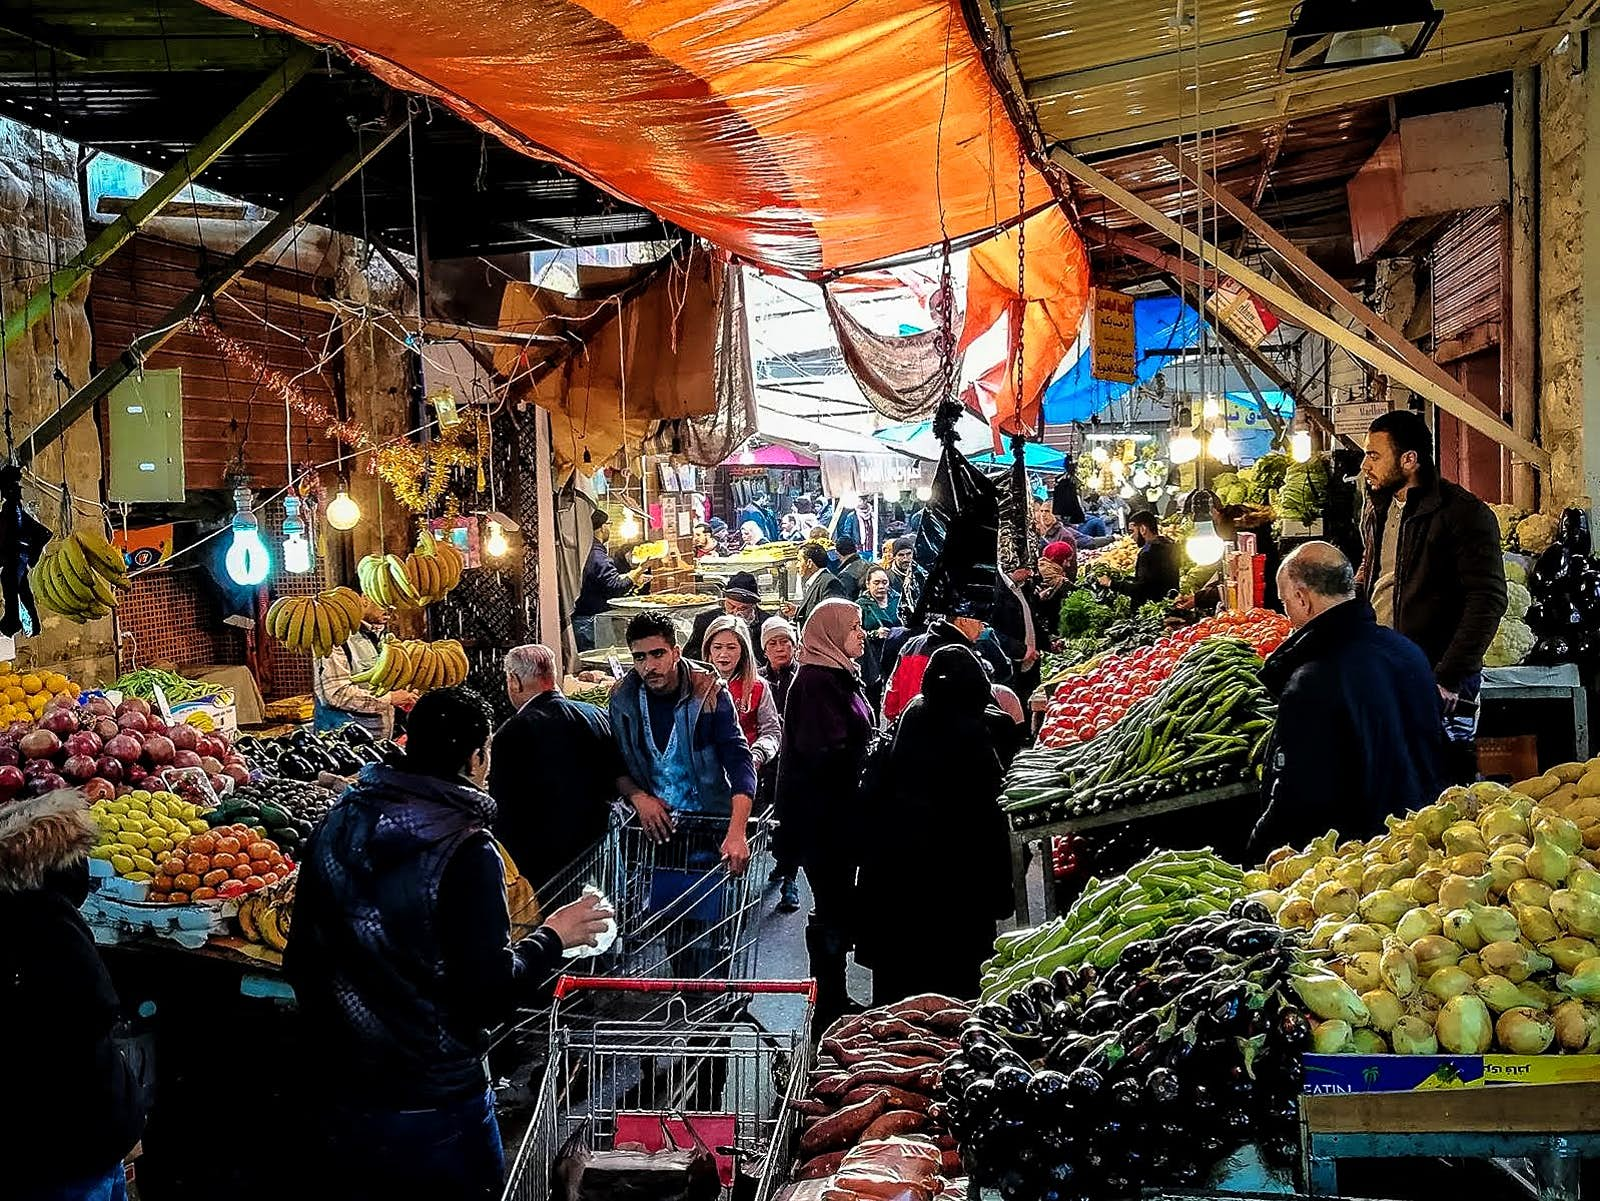 Fruit and vegetables are piled high on both sides of a narrow walkway under a covered market; shoppers push carts or carry bags, while sellers stand behind their goods on raised platforms; Free things to do in Amman, Jordan